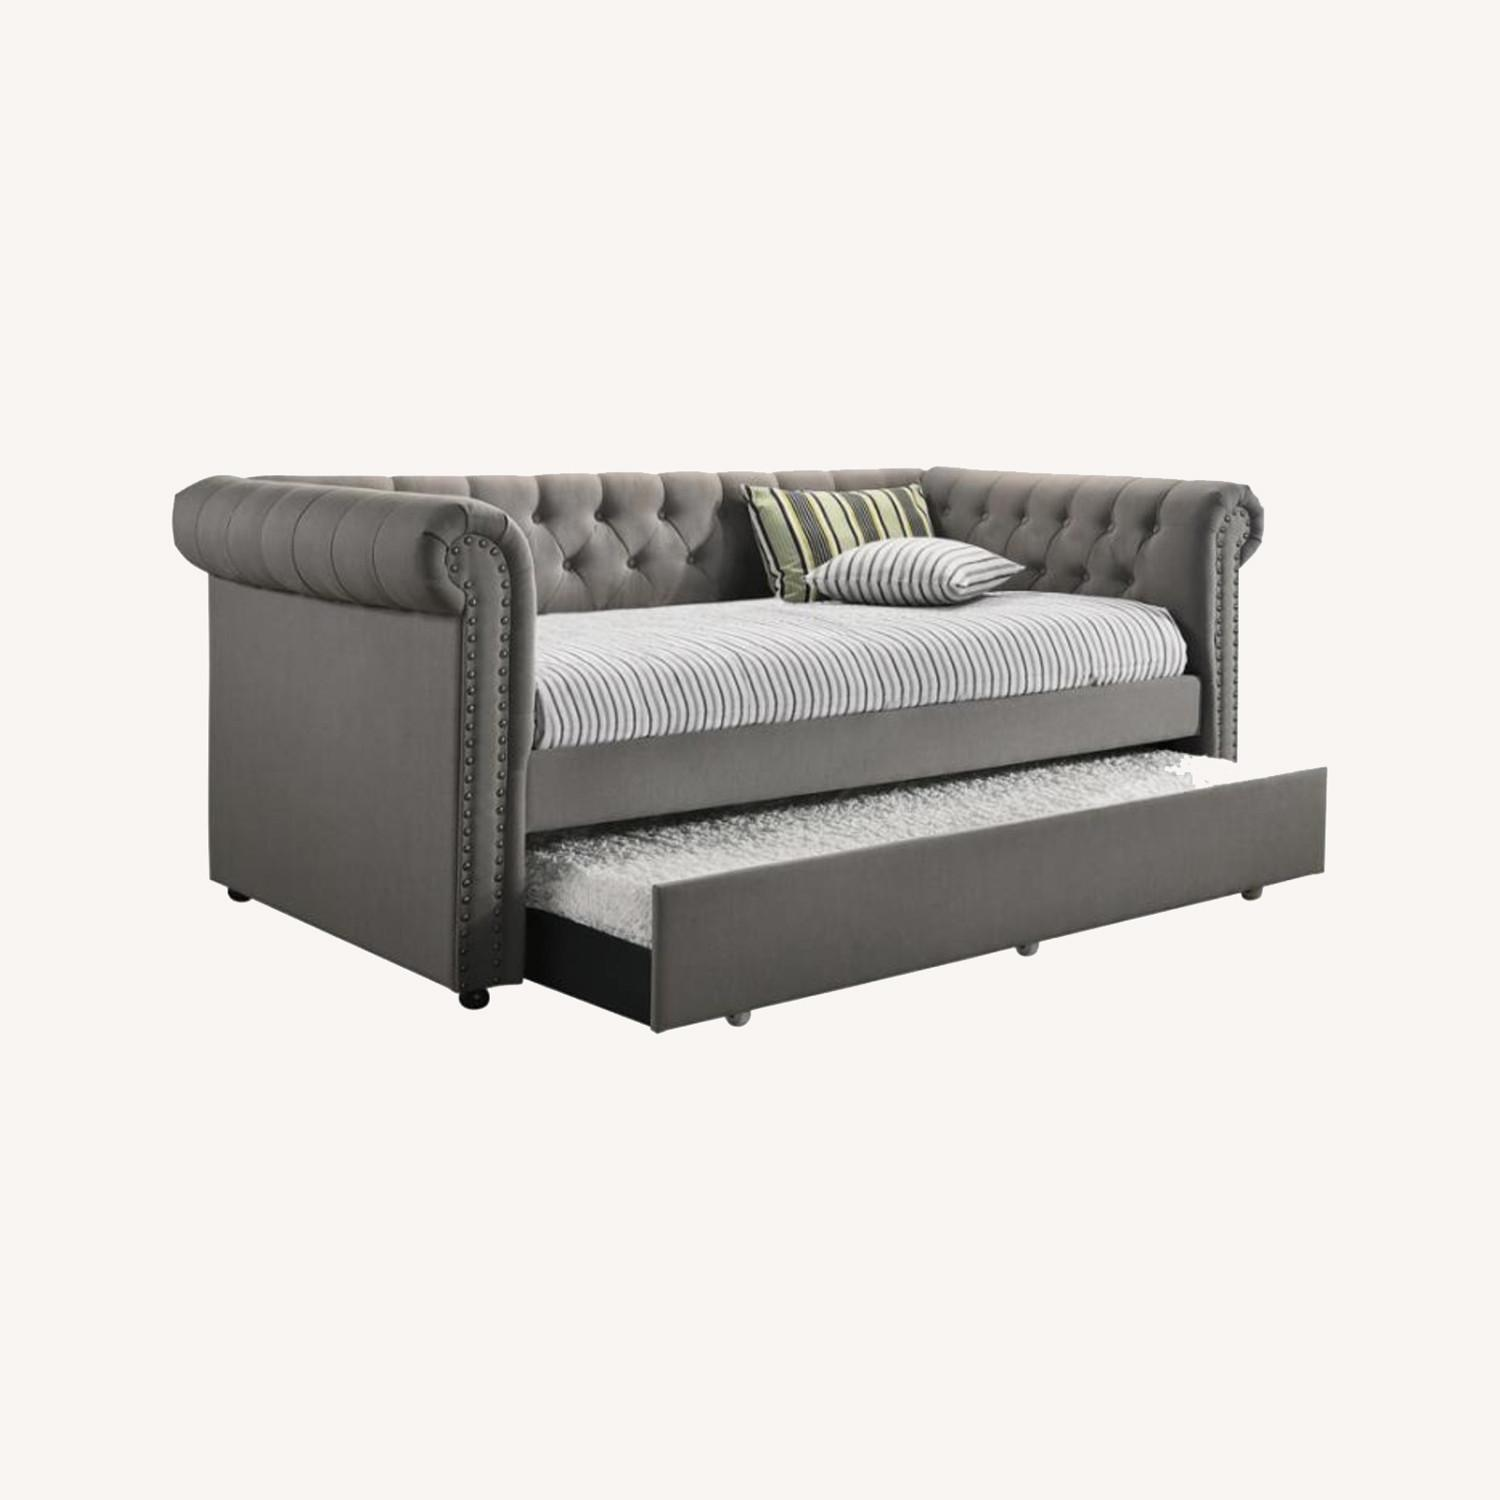 Twin Daybed W/ Trundle In Grey Fabric Upholstery - image-3